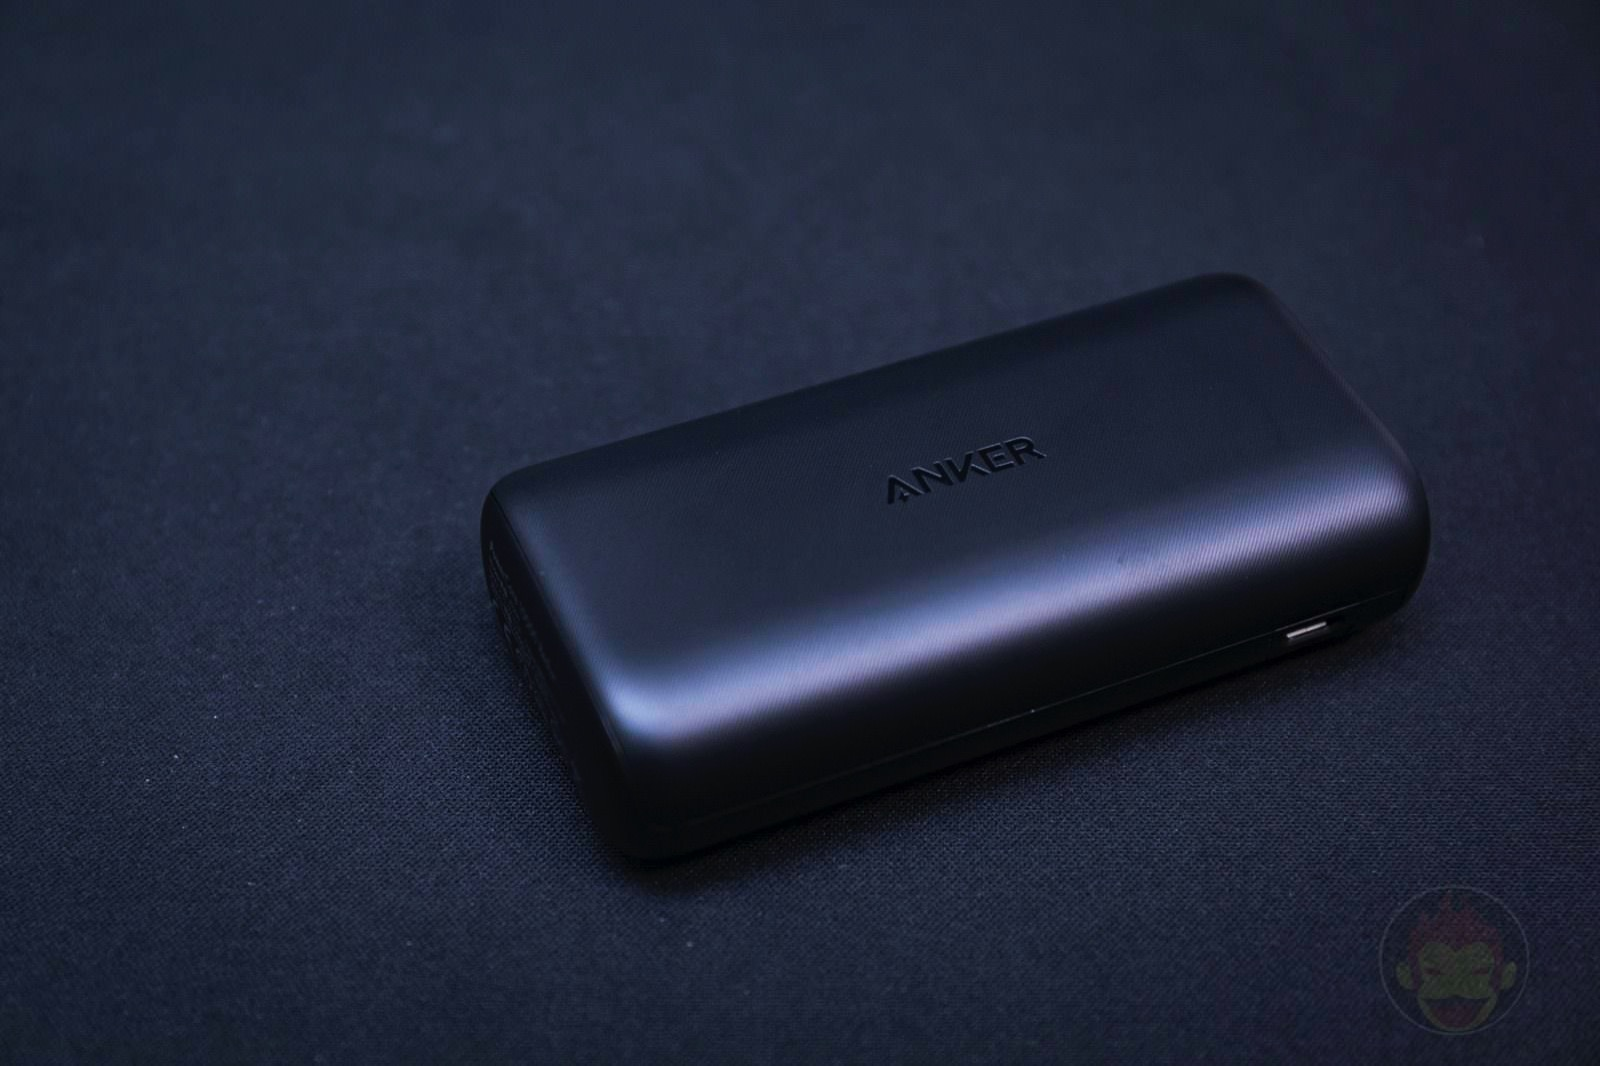 Anker-PowerCore-10000-Redux-Review-01.jpg